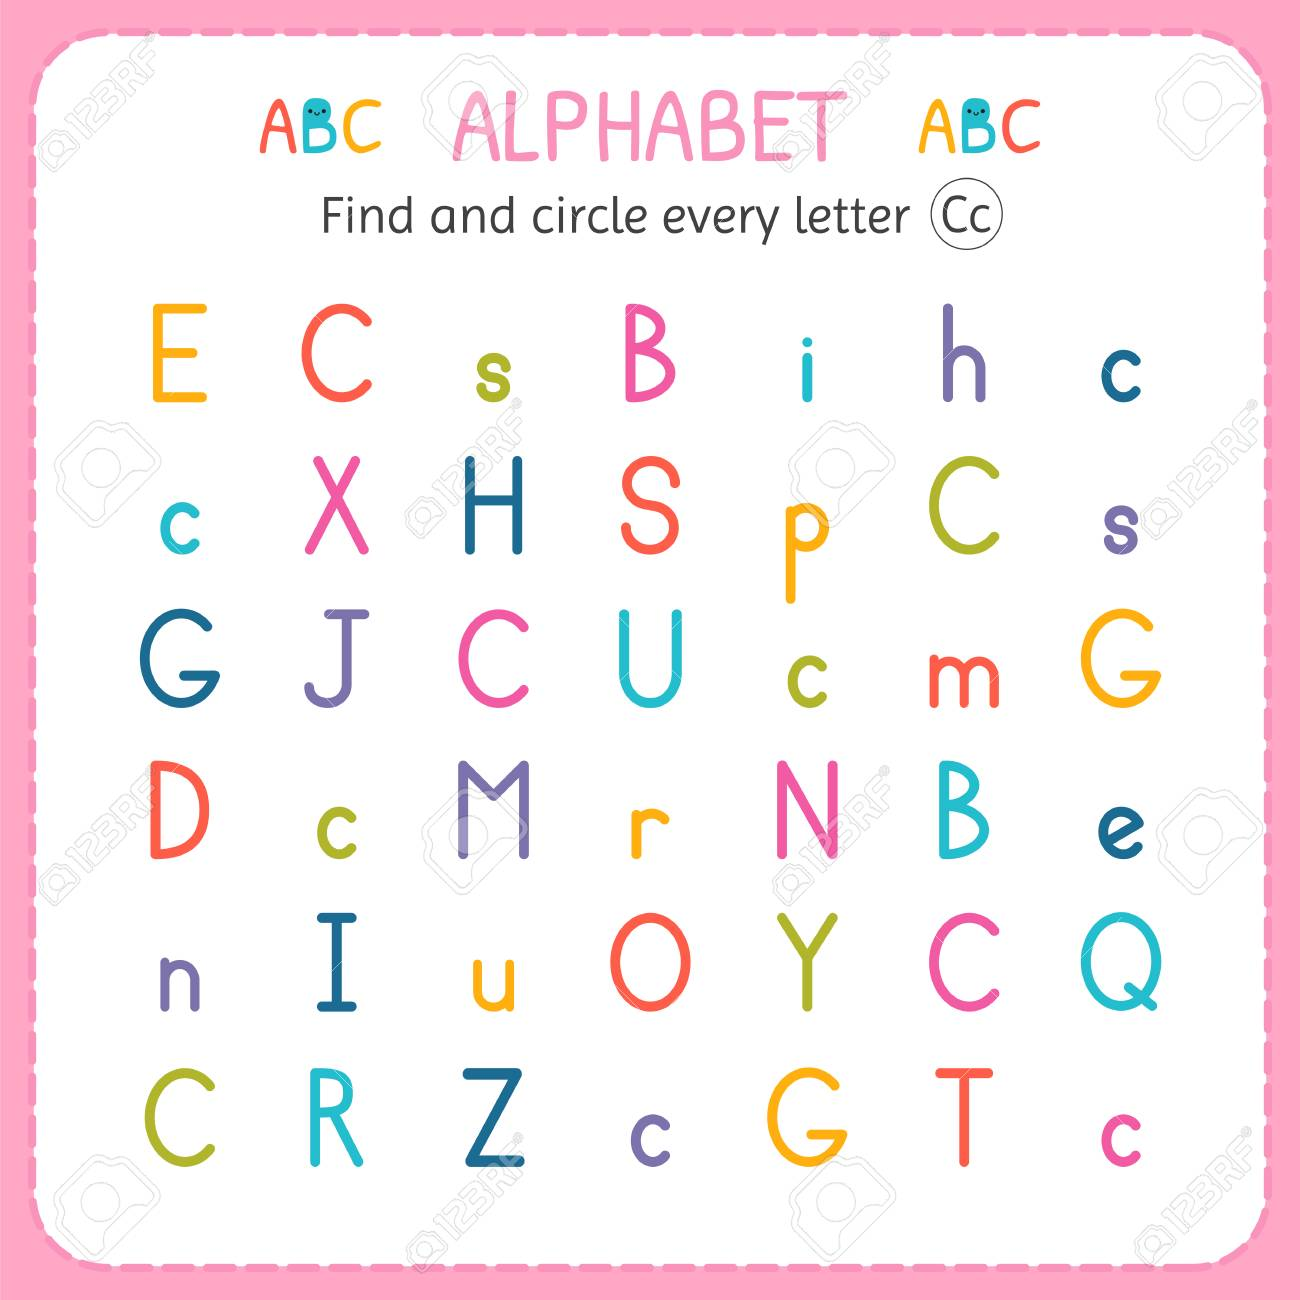 Find And Circle Every Letter C Worksheet For Kindergarten And Royalty Free Cliparts Vectors And Stock Illustration Image 100913266